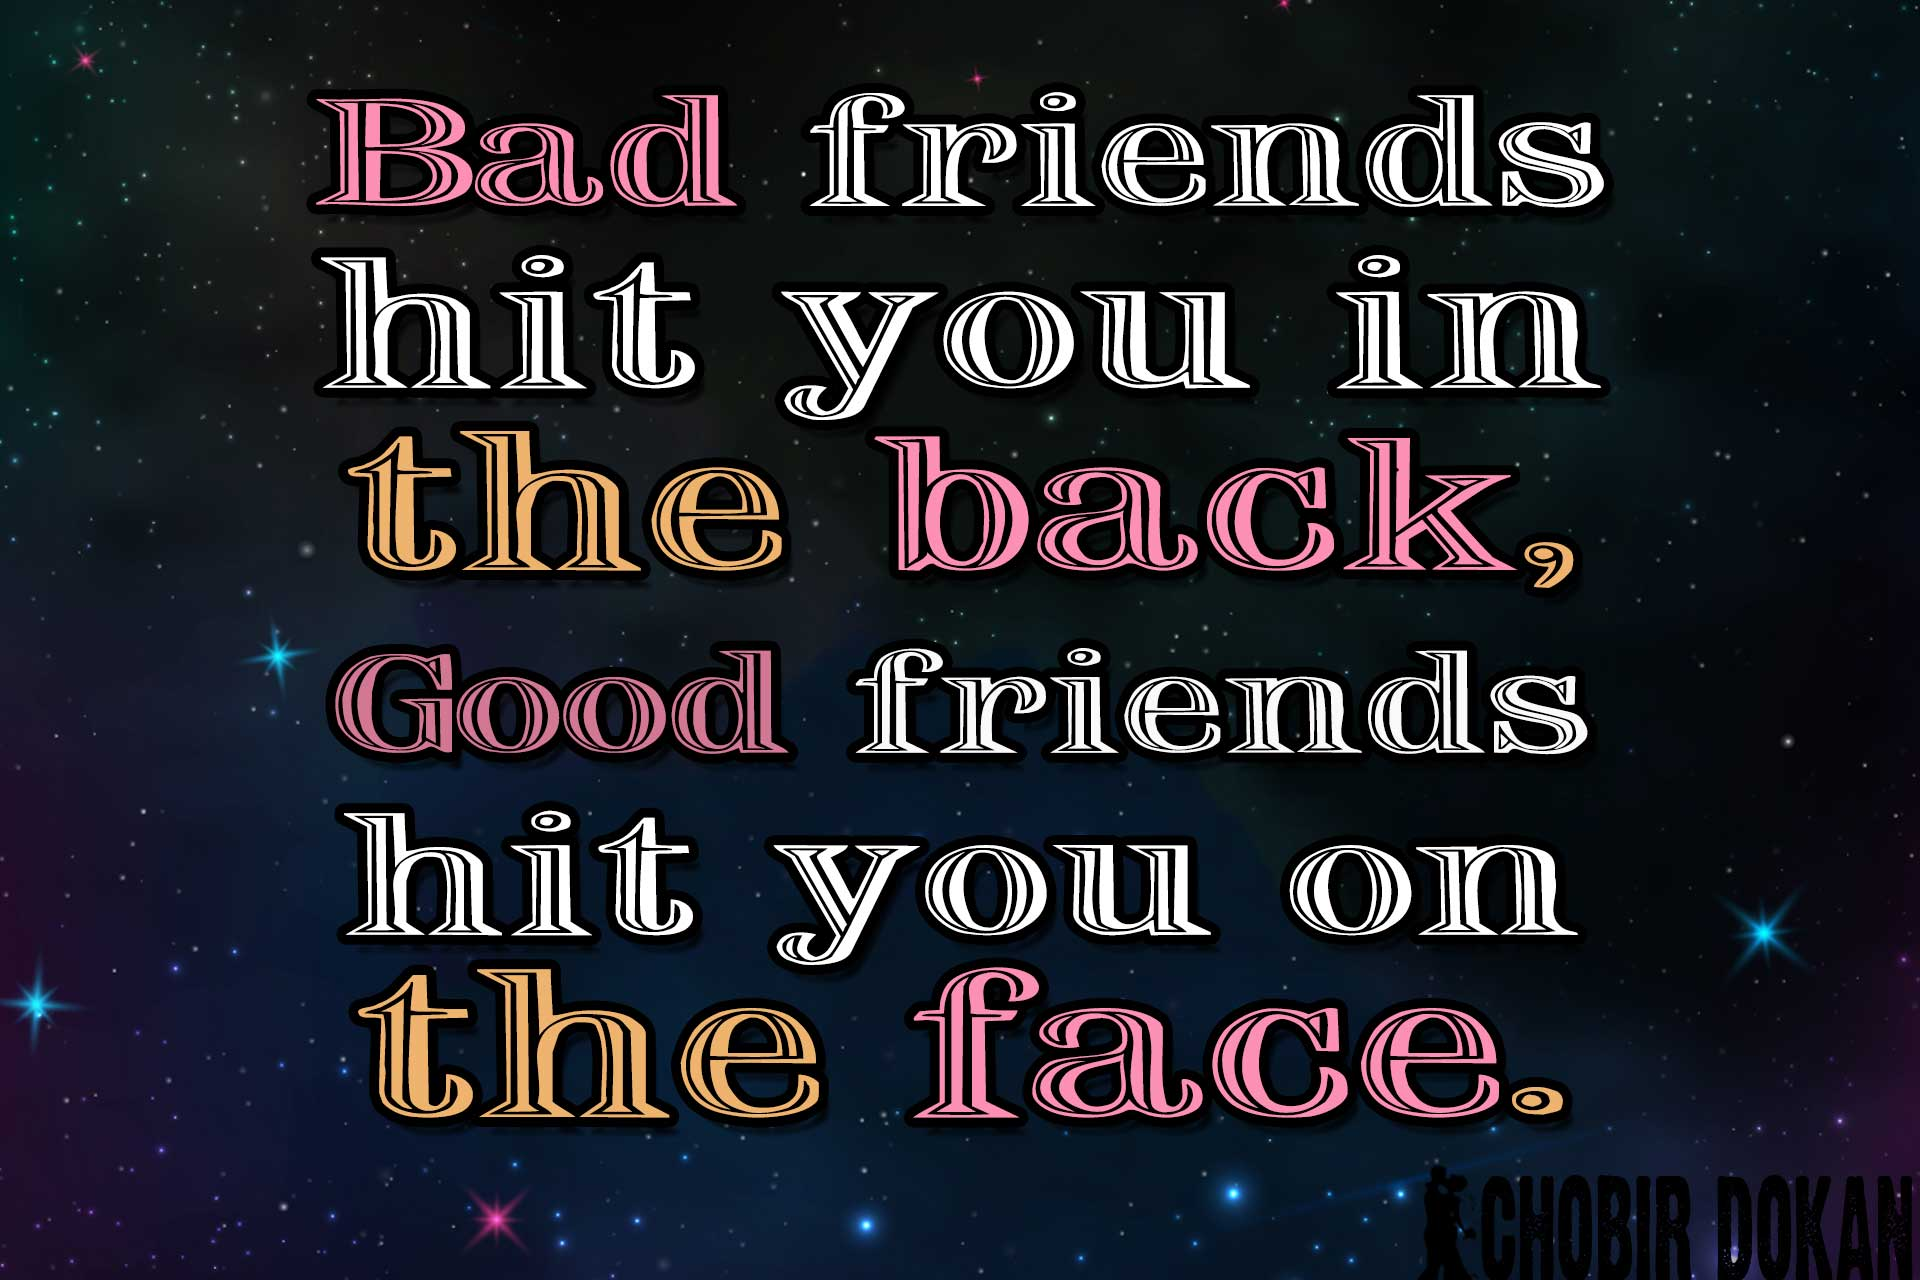 Quotes About Good Friendship Interesting 28 Fake Friends Quotes Images For Facebook Quotes About Bad Friends